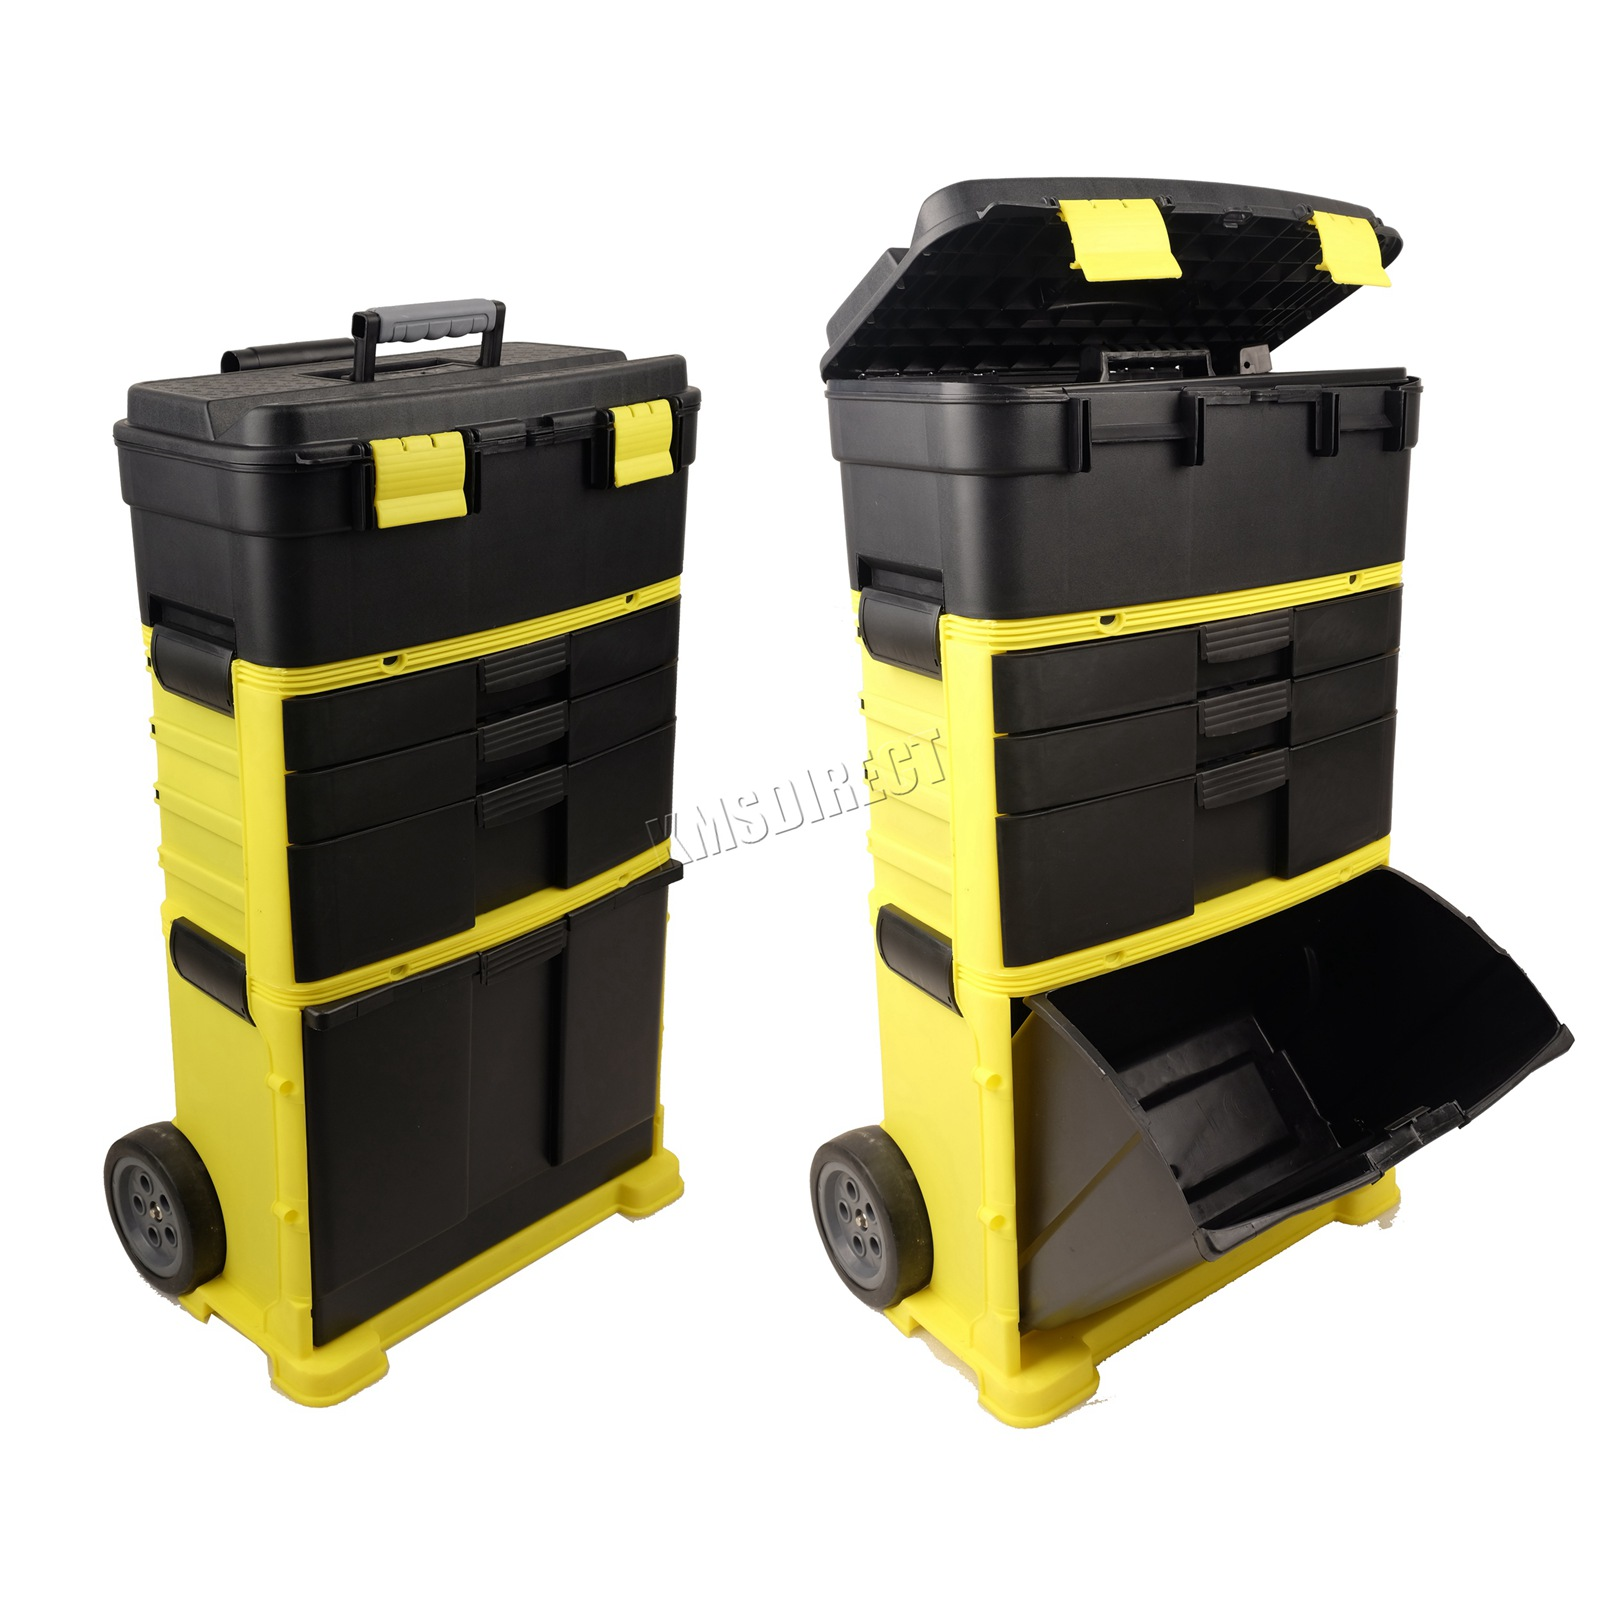 FoxHunter-Plastic-Mobile-Roller-Work-Shop-Chest-Trolley-Storage-Tool-Box-Toolbox